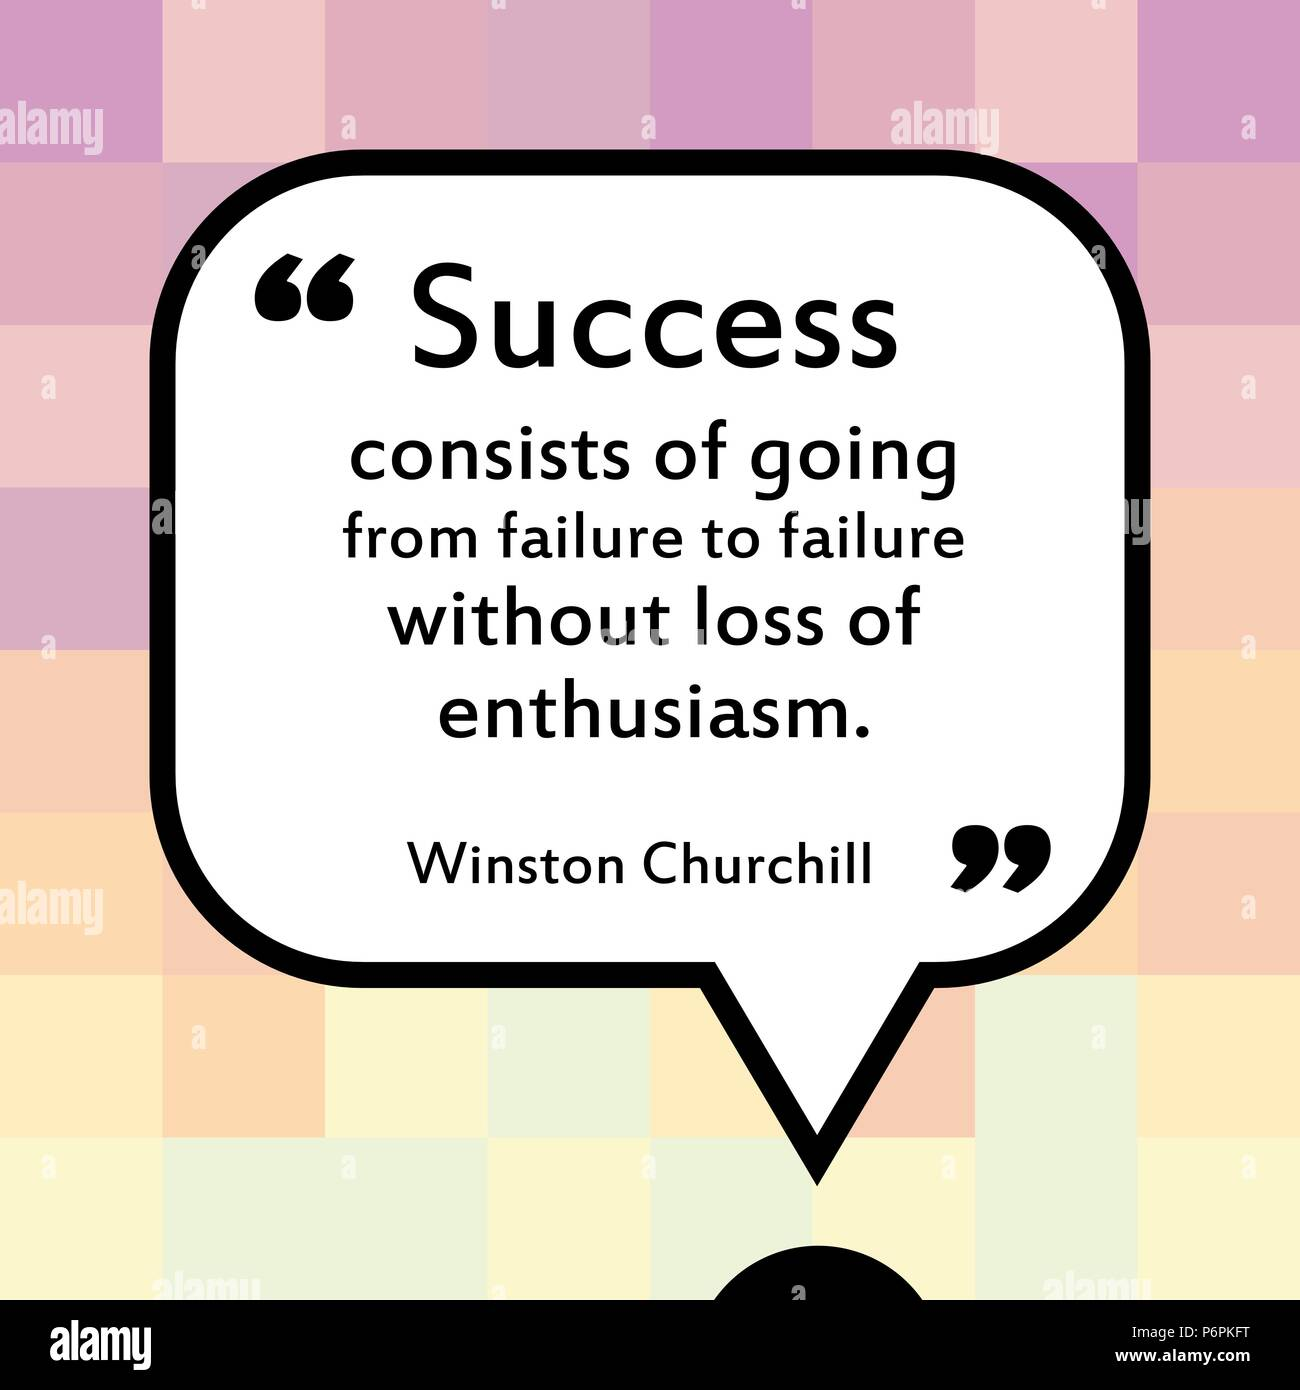 Inspirational Quotes About Failure: Winston Churchill Quote Stock Photos & Winston Churchill